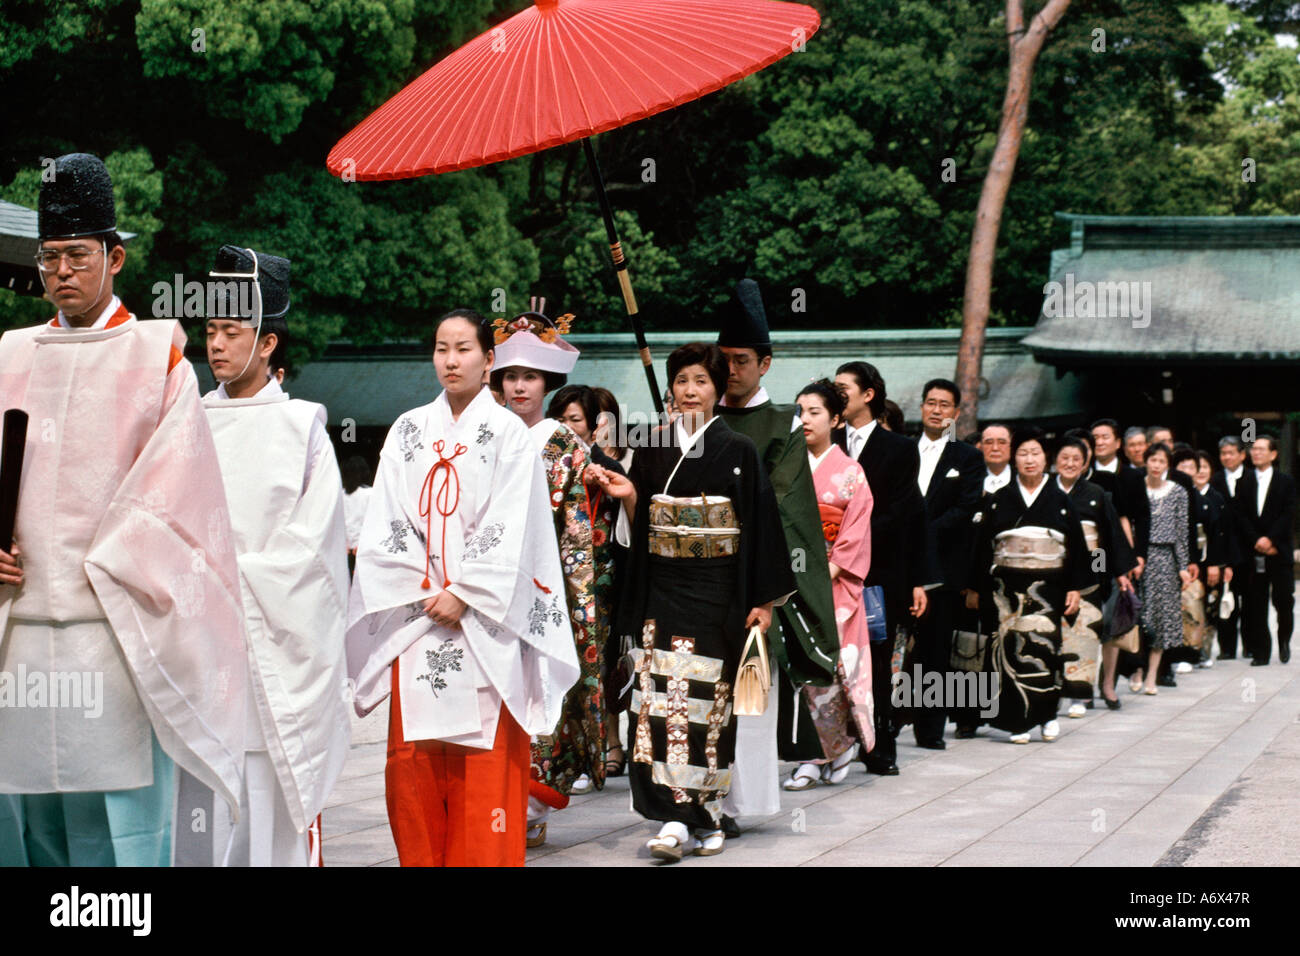 A Traditional Japanese Wedding Procession At The Meiji Shrine In Stock Photo Royalty Free Image